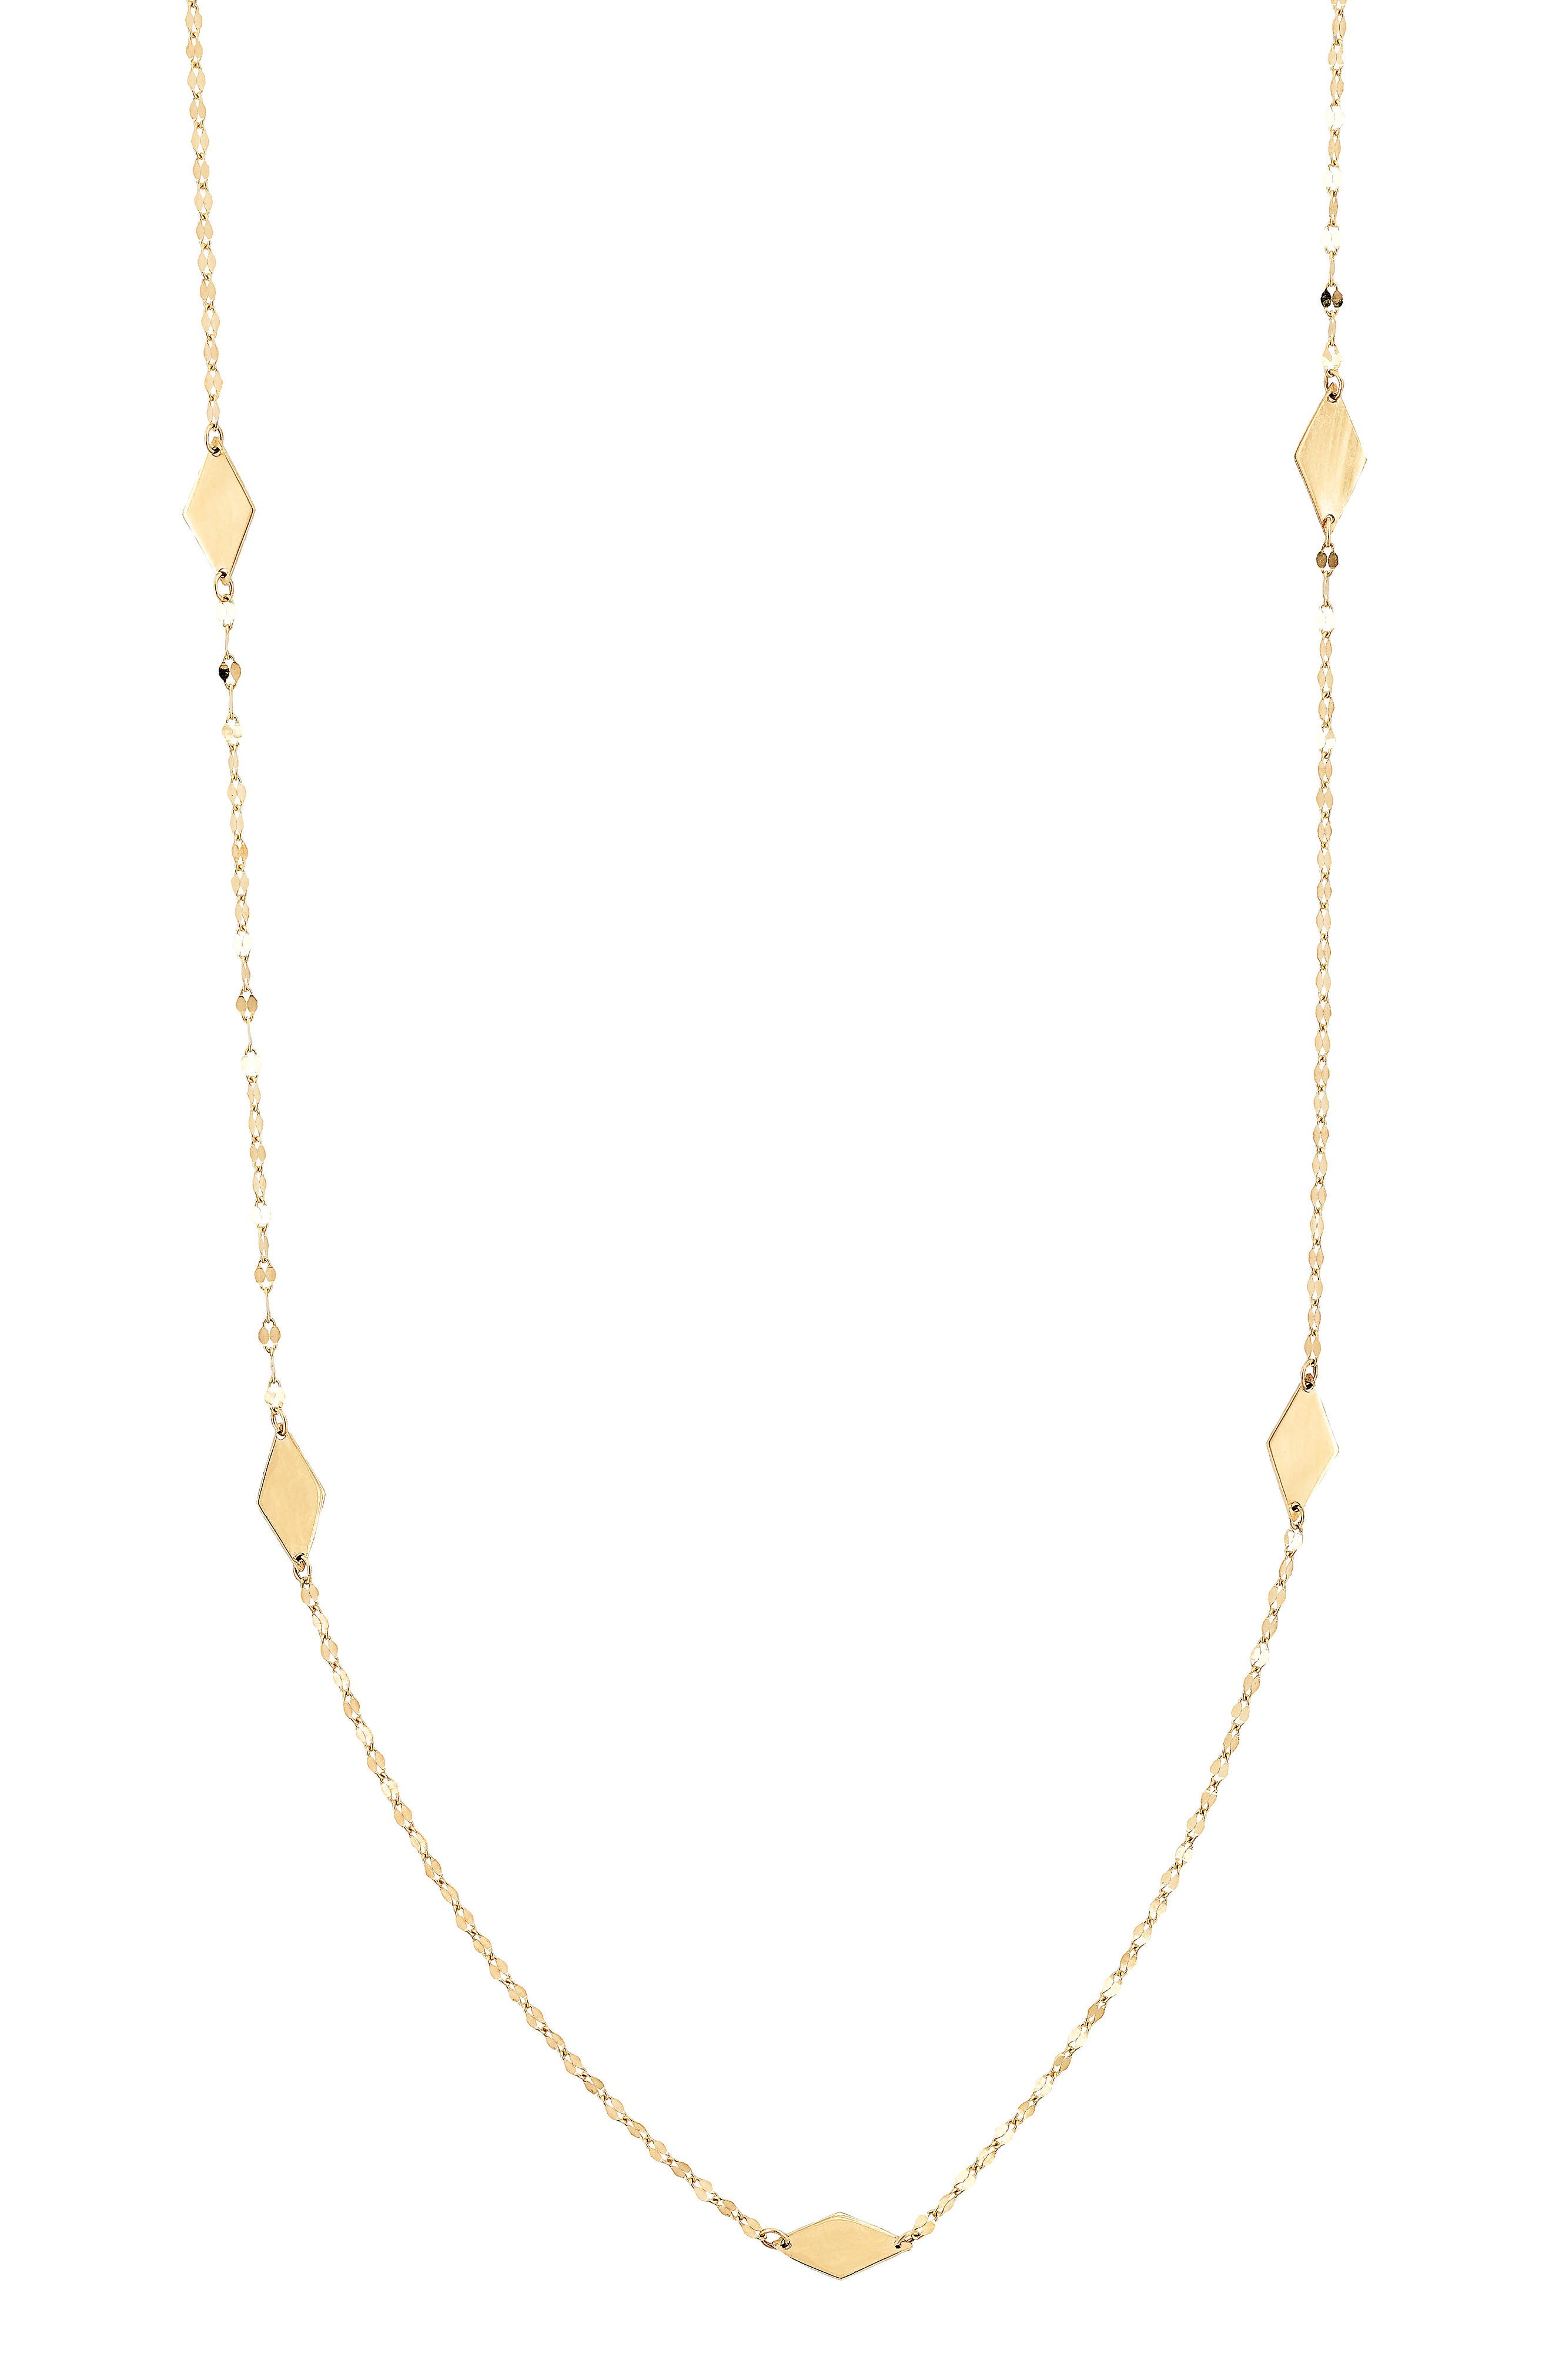 Kite Station Necklace,                         Main,                         color, Yellow Gold